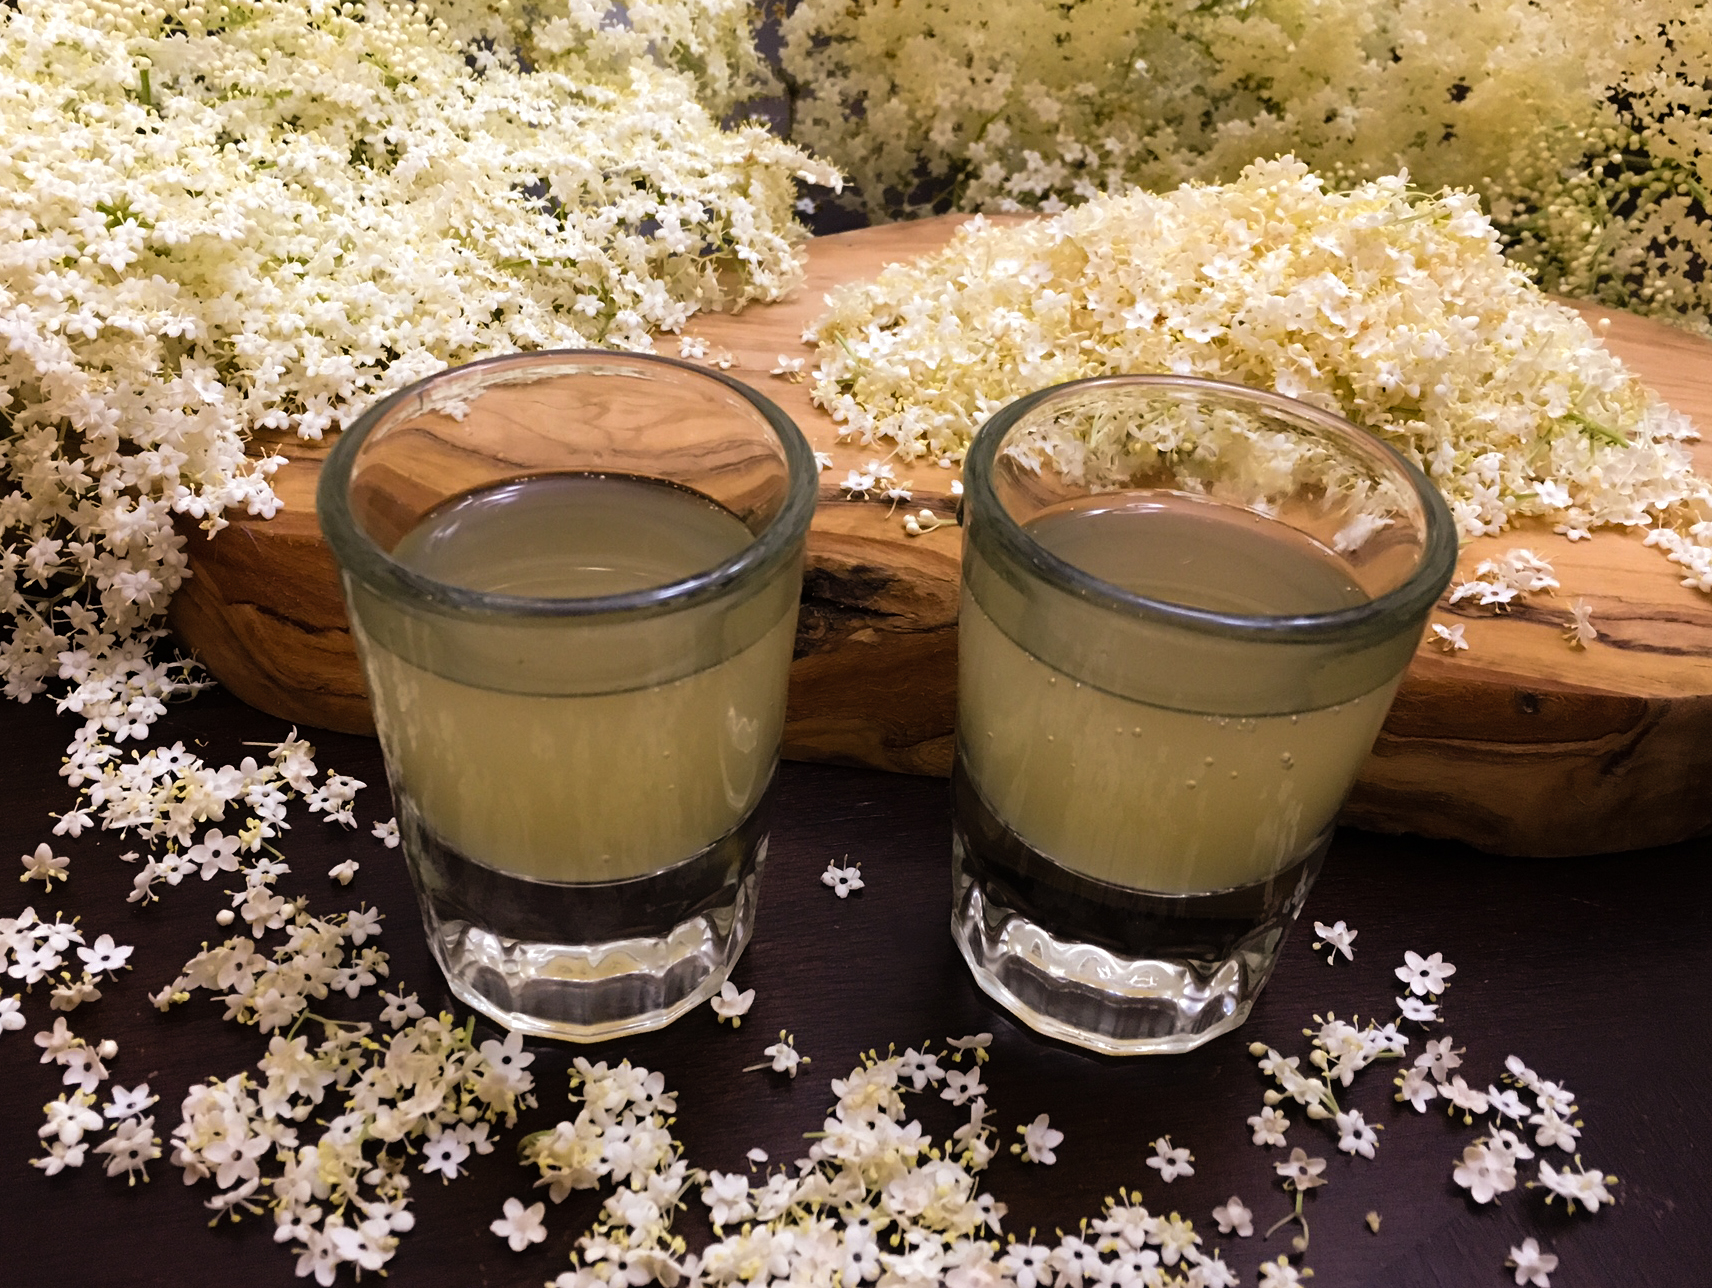 Sparkling elderflower syrup has an incredible flavor that words just won't do justice to. www.TyrantFarms.com